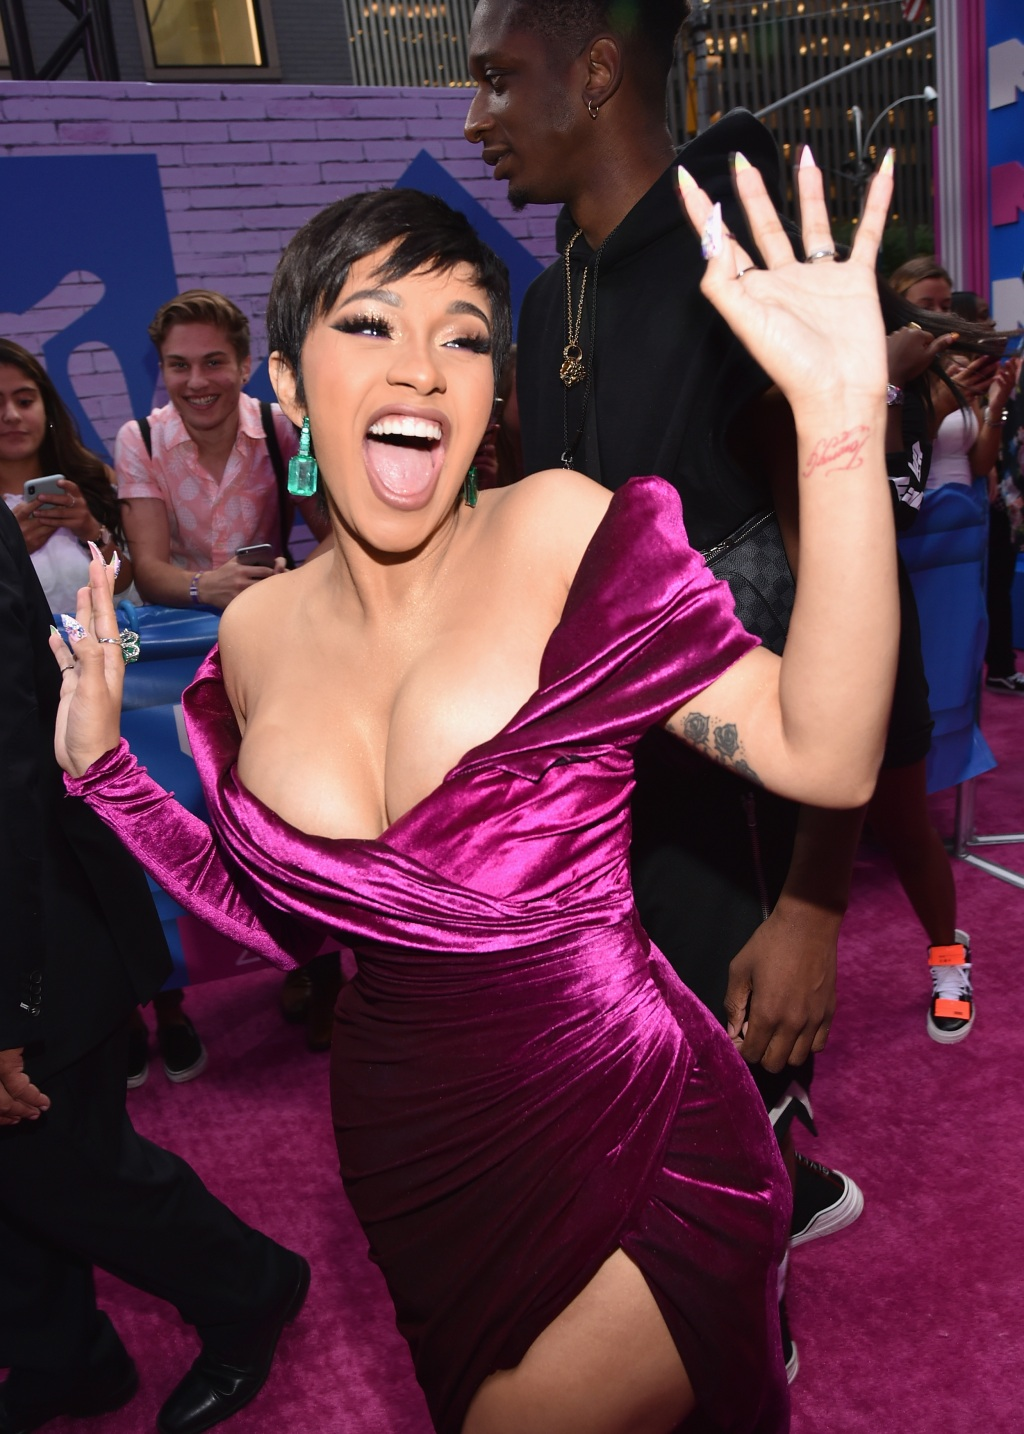 Cardi B will open the 2018 MTV Video Music Awards, this is her first appearance since giving birth this summer.